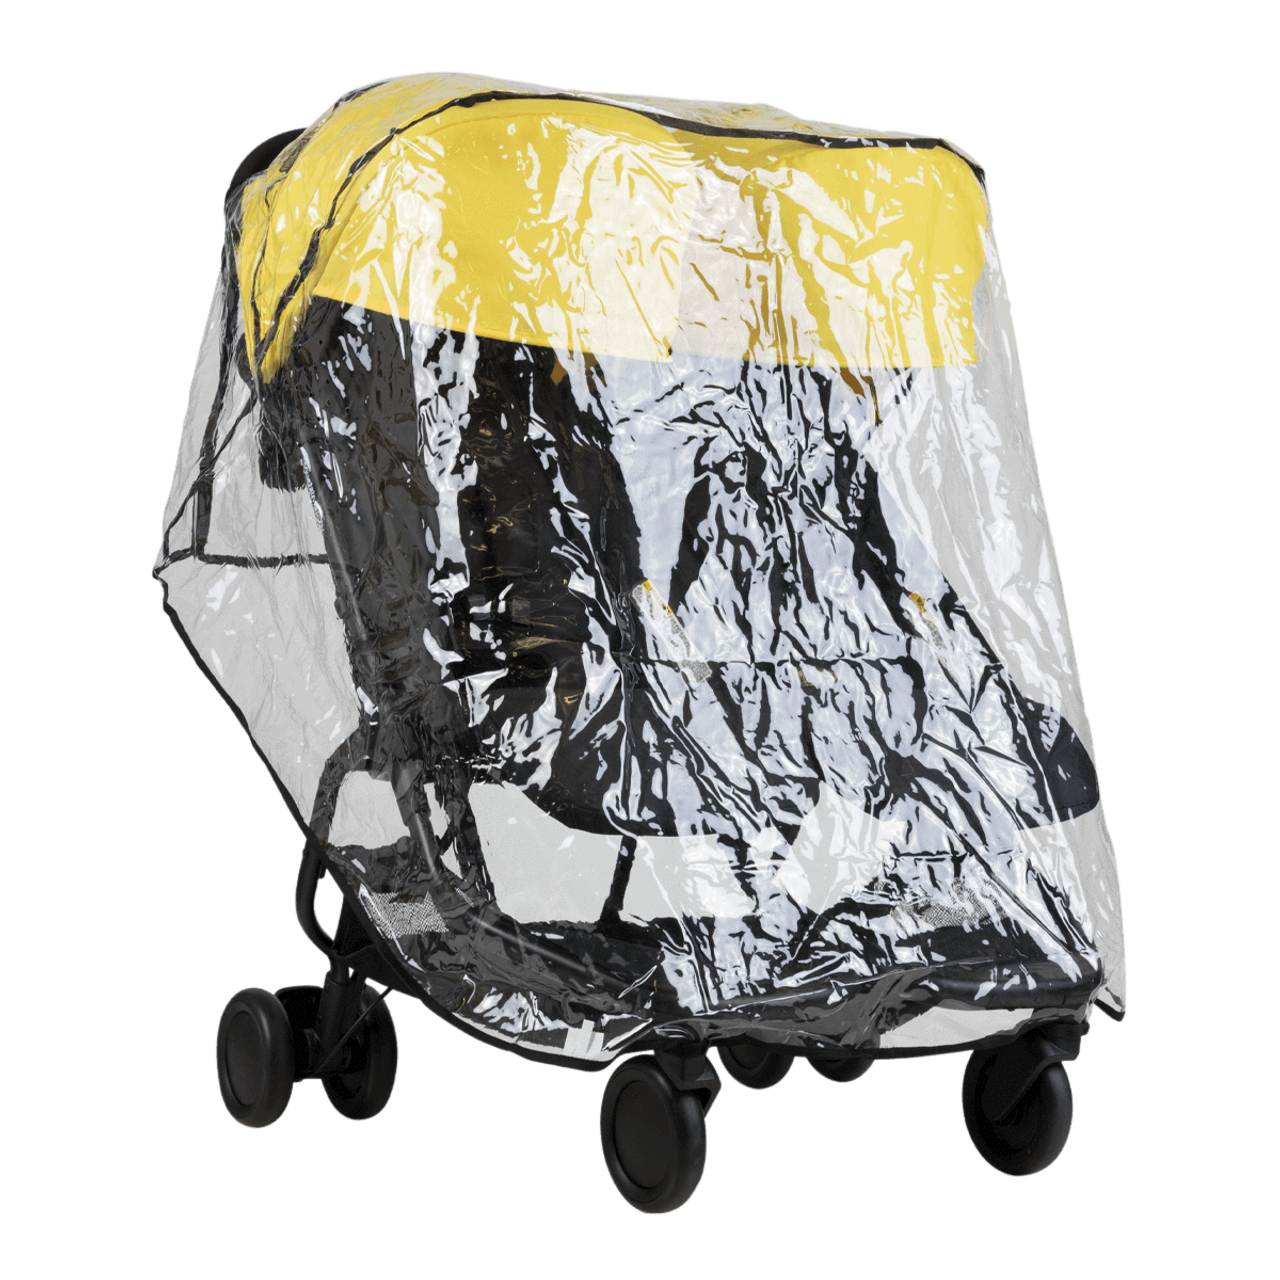 Mountain Buggy Nano Duo Storm Cover at Baby Barn Discounts Custom fit you Mountain Buggy Nano Duo with the storm cover that offers protection from harsh weather.